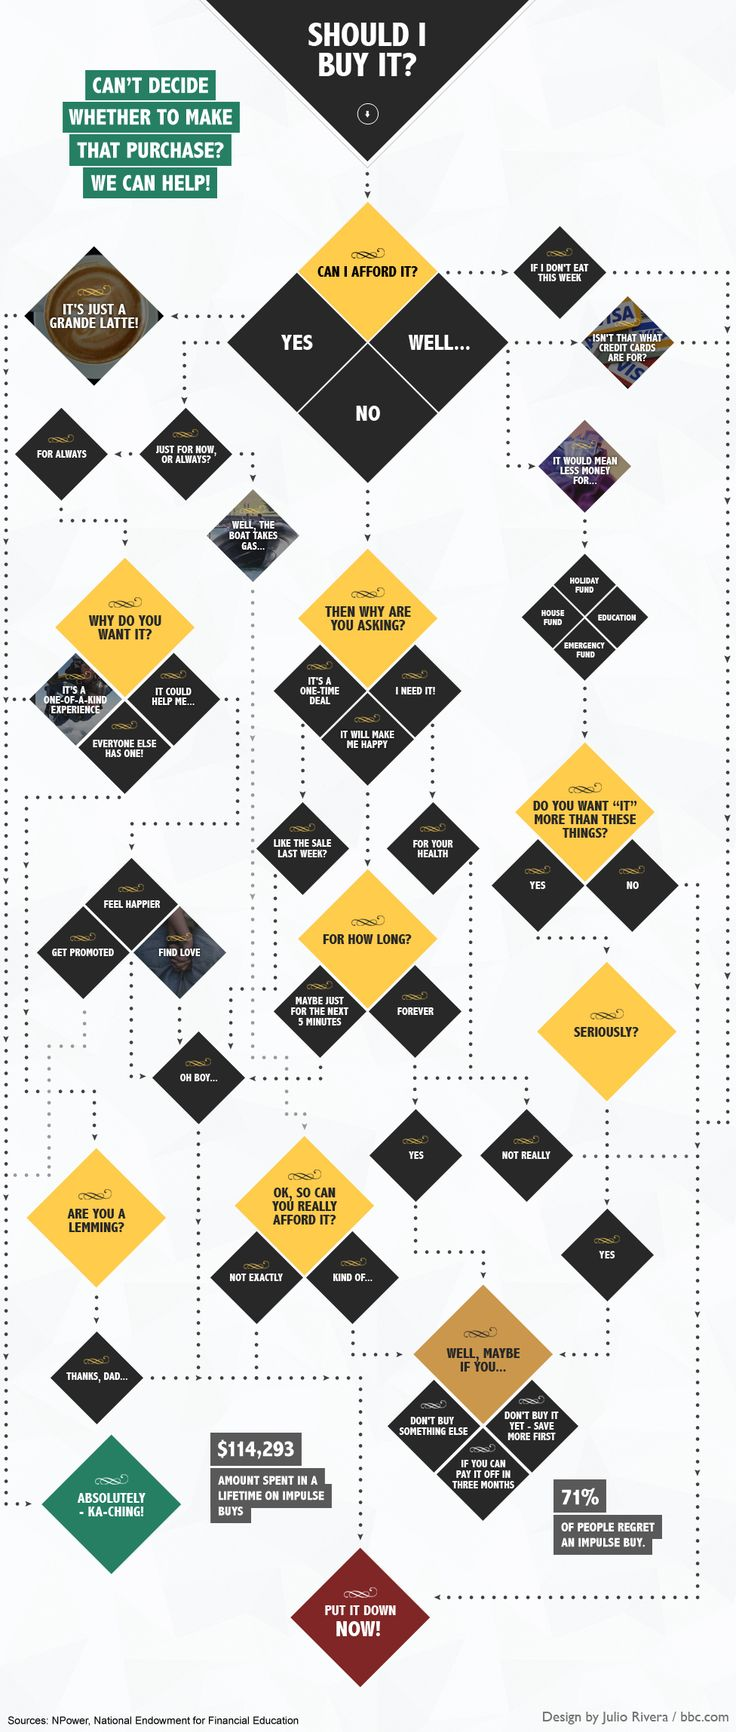 A decision tree showing whether you should buy something you want but dont need.